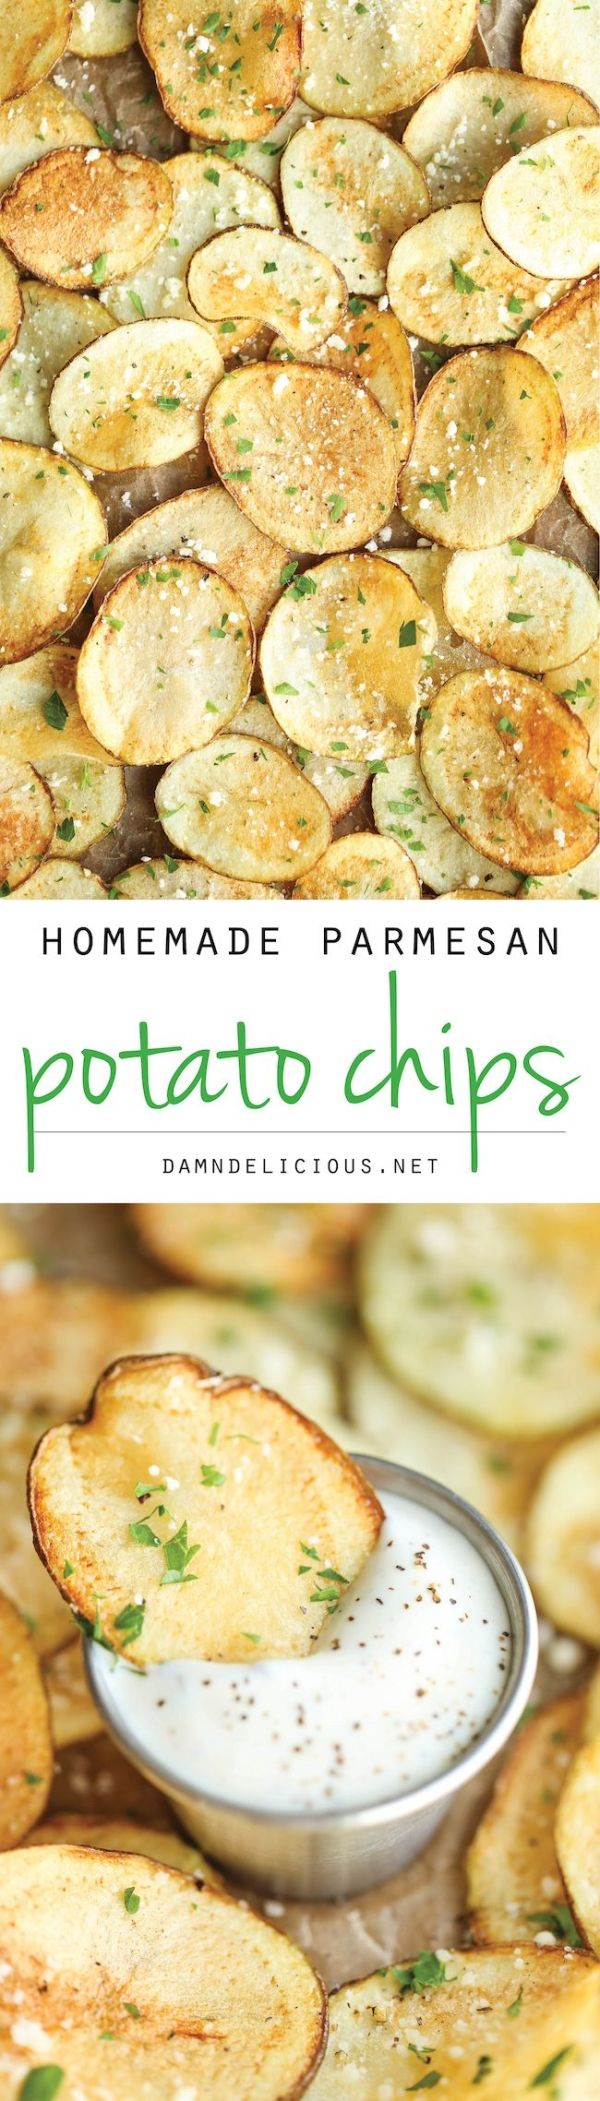 Homemade Parmesan Potato Chips - The easiest and cheapest DIY potato chips loaded with Parmesan goodness - and yes, it tastes 100x better than store-bought! by isabelle07